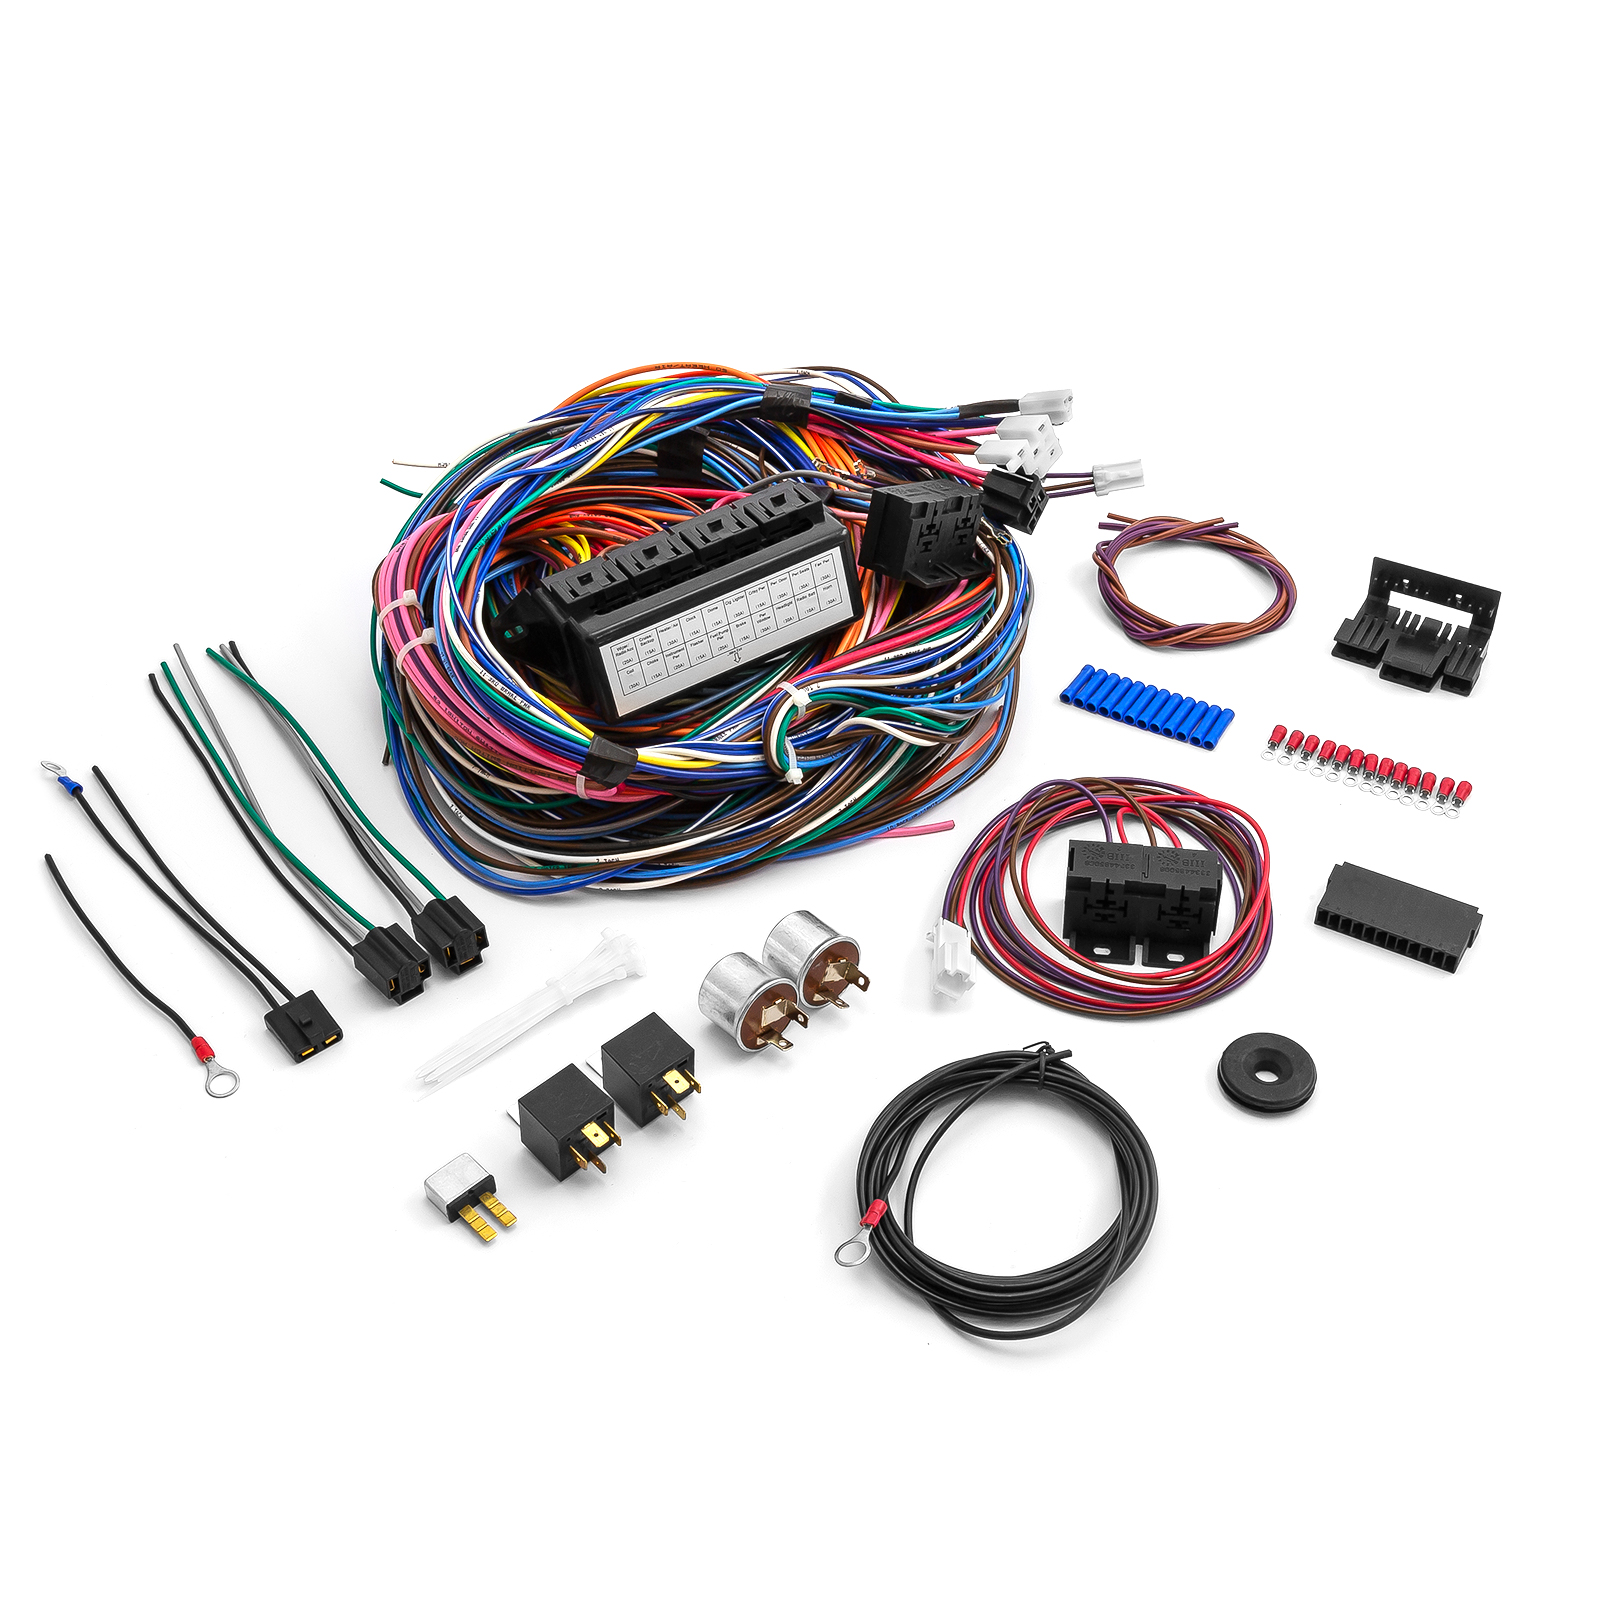 hight resolution of universal 20 circuit wiring harness kit street rod hot rod race car 20 circuit universal wiring harness kit